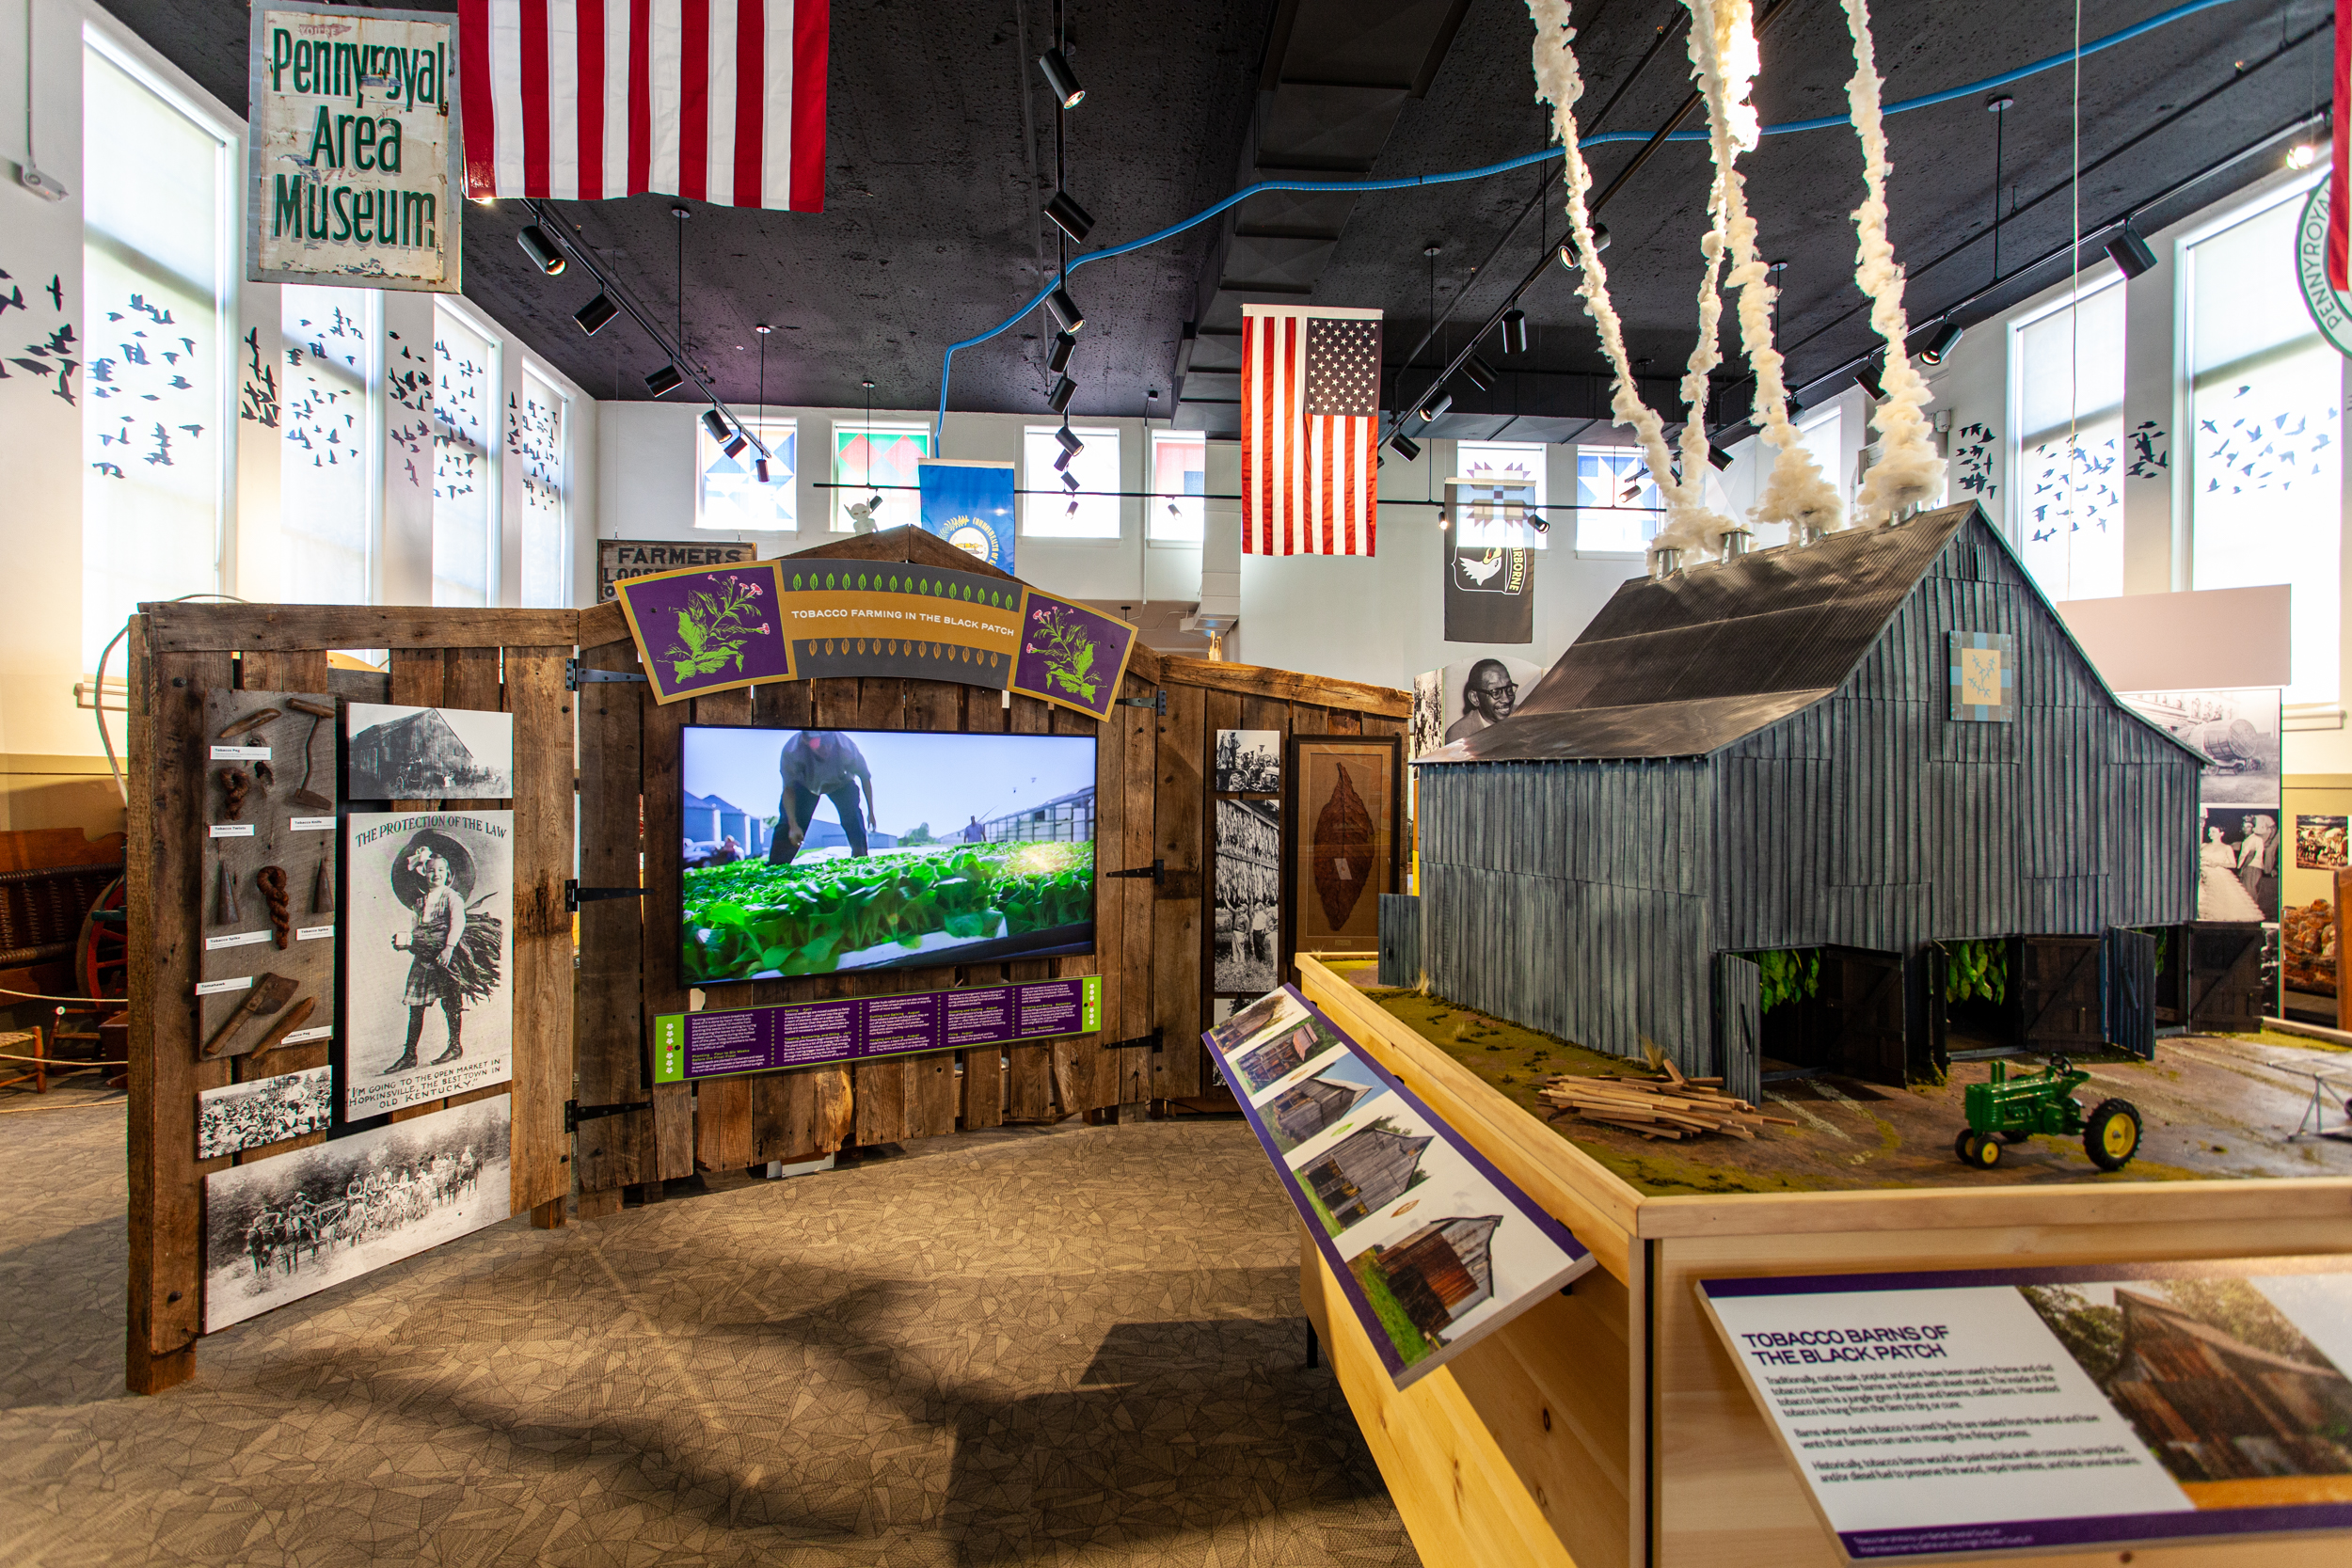 Farming in the Black Patch history and science exhibits, including a scale-model tobacco barn, at the inclusive and interactive Pennyroyal Area Museum.